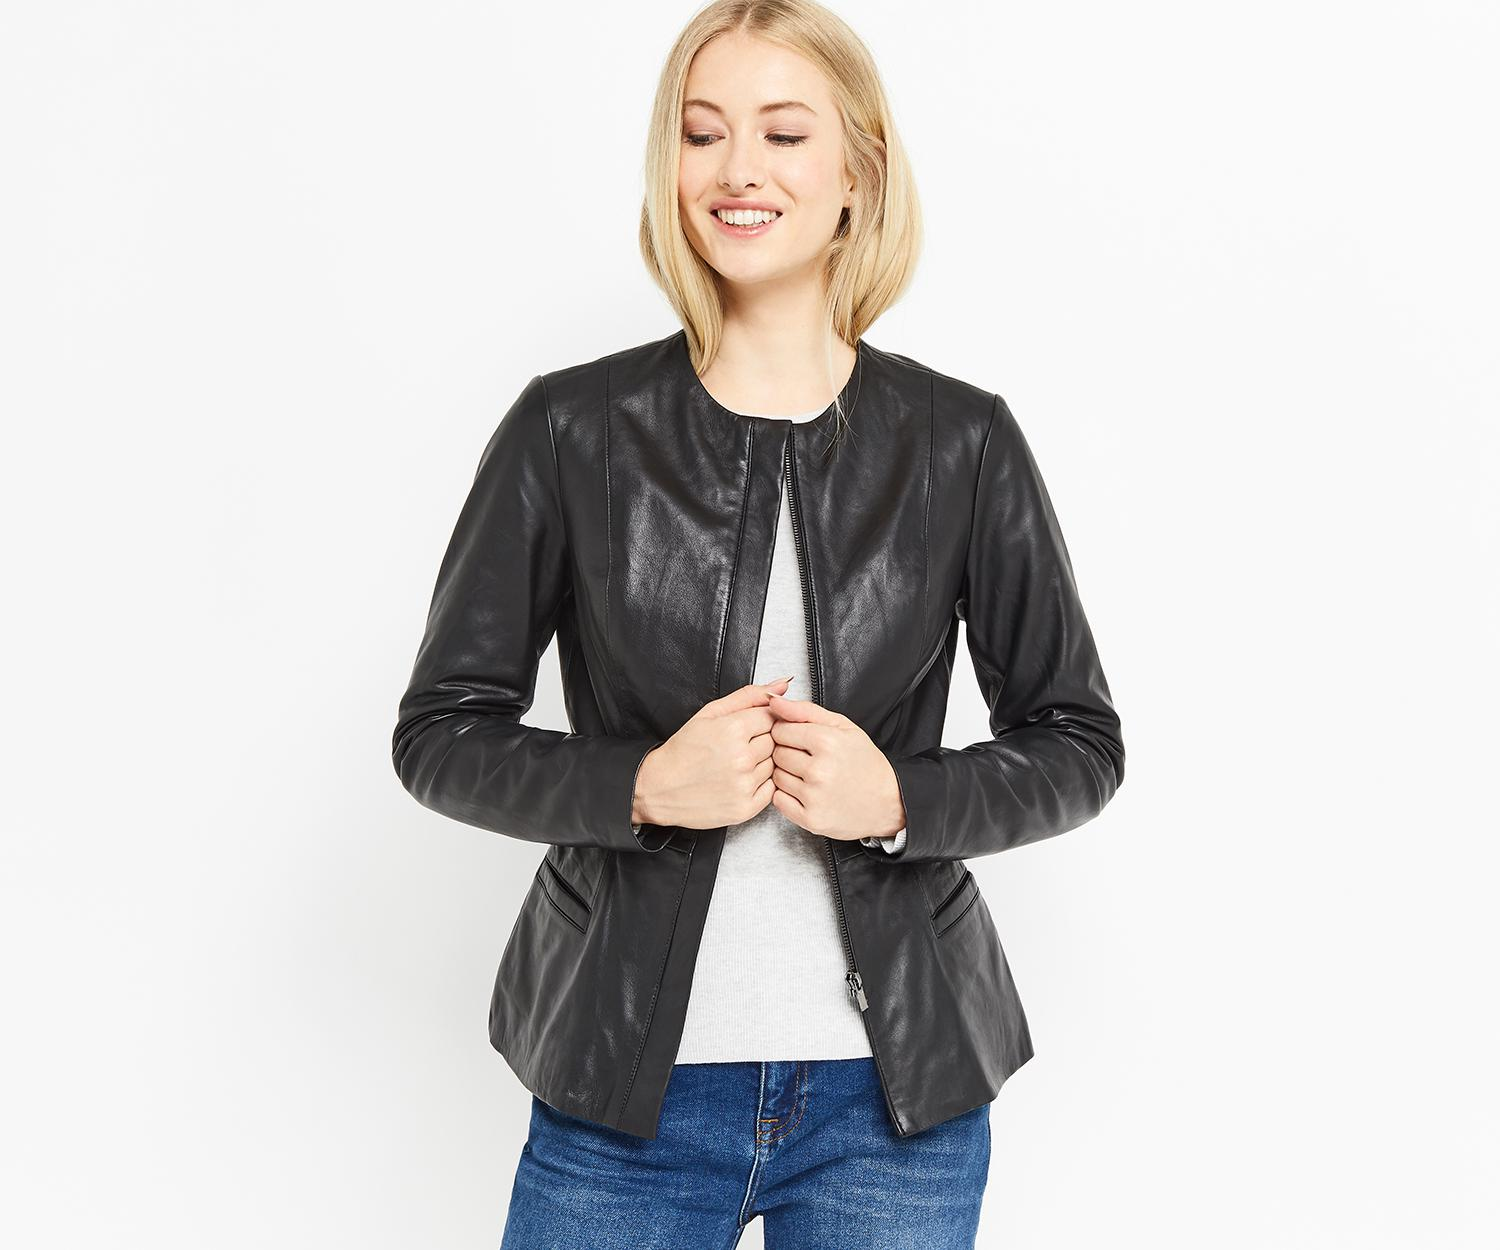 Lyst - Oasis Collarless Leather Jacket In Black-4922